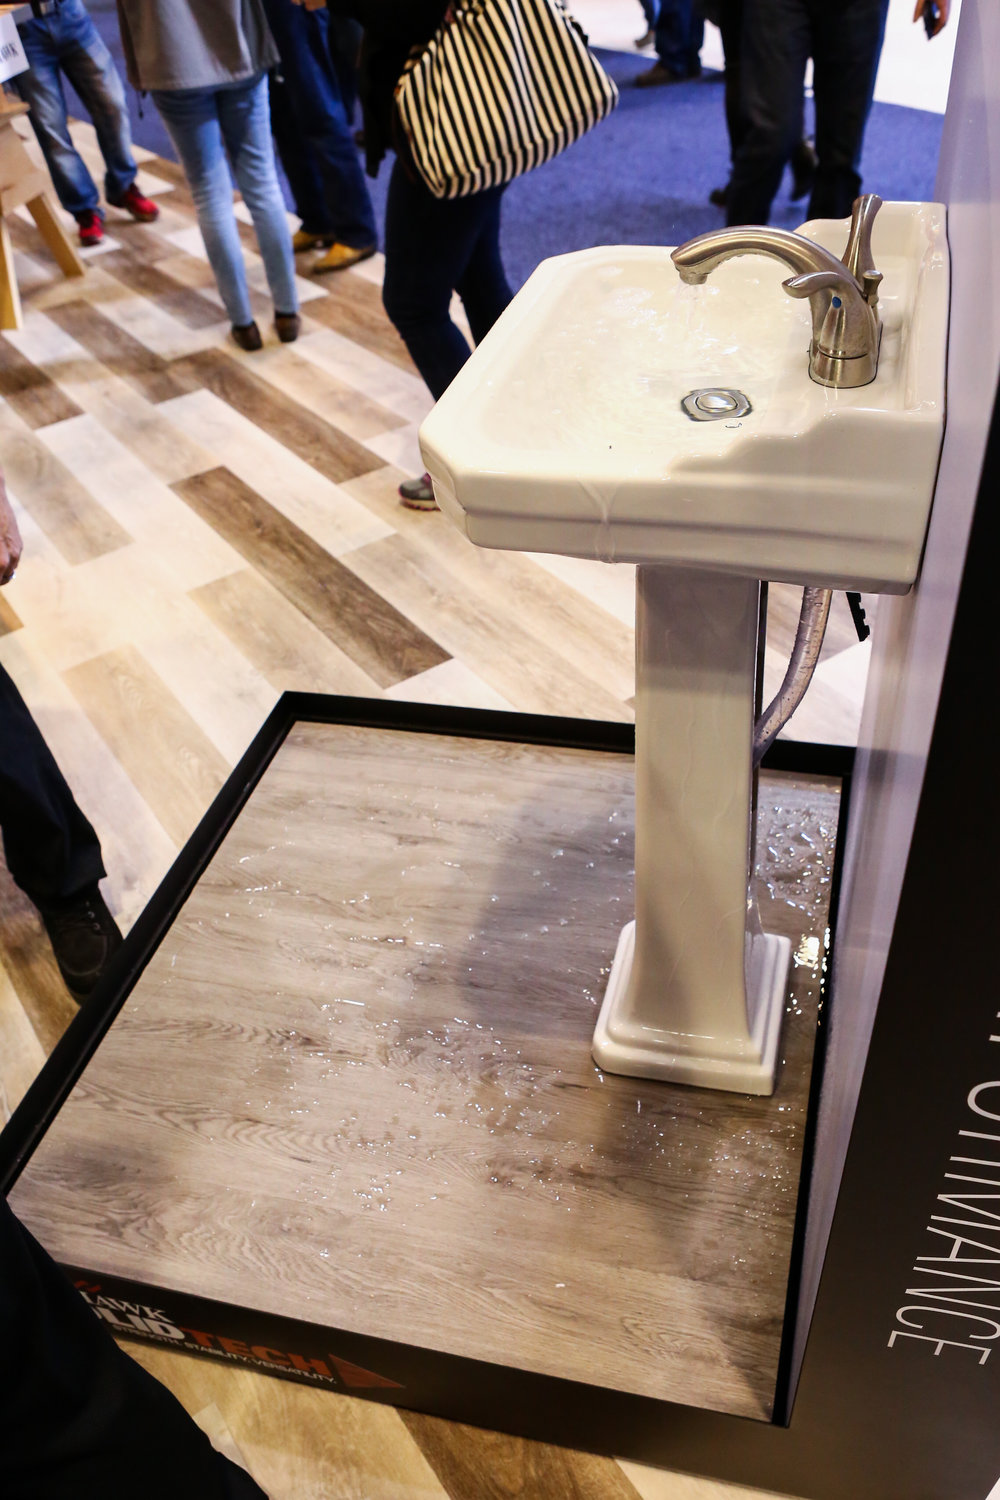 Waterproof Mohawk SolidTech vinyl flooring display at KBIS 2017. photo by Felix O.B/FXO Photography